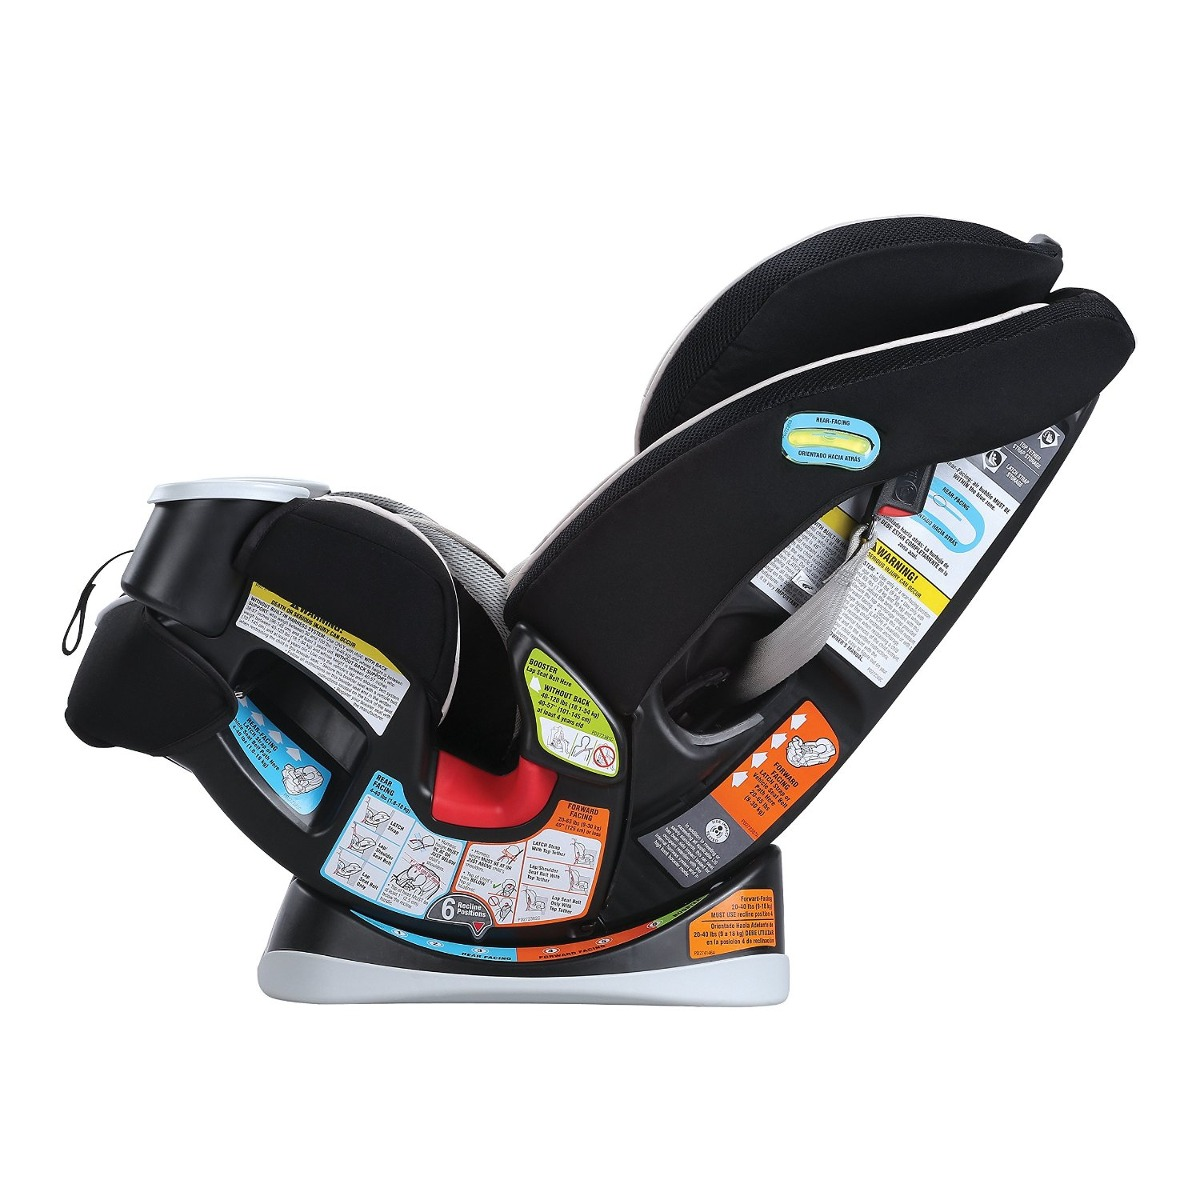 Silla de beb para carro graco 4ever all in one de asiento for Silla para coche nino 4 anos